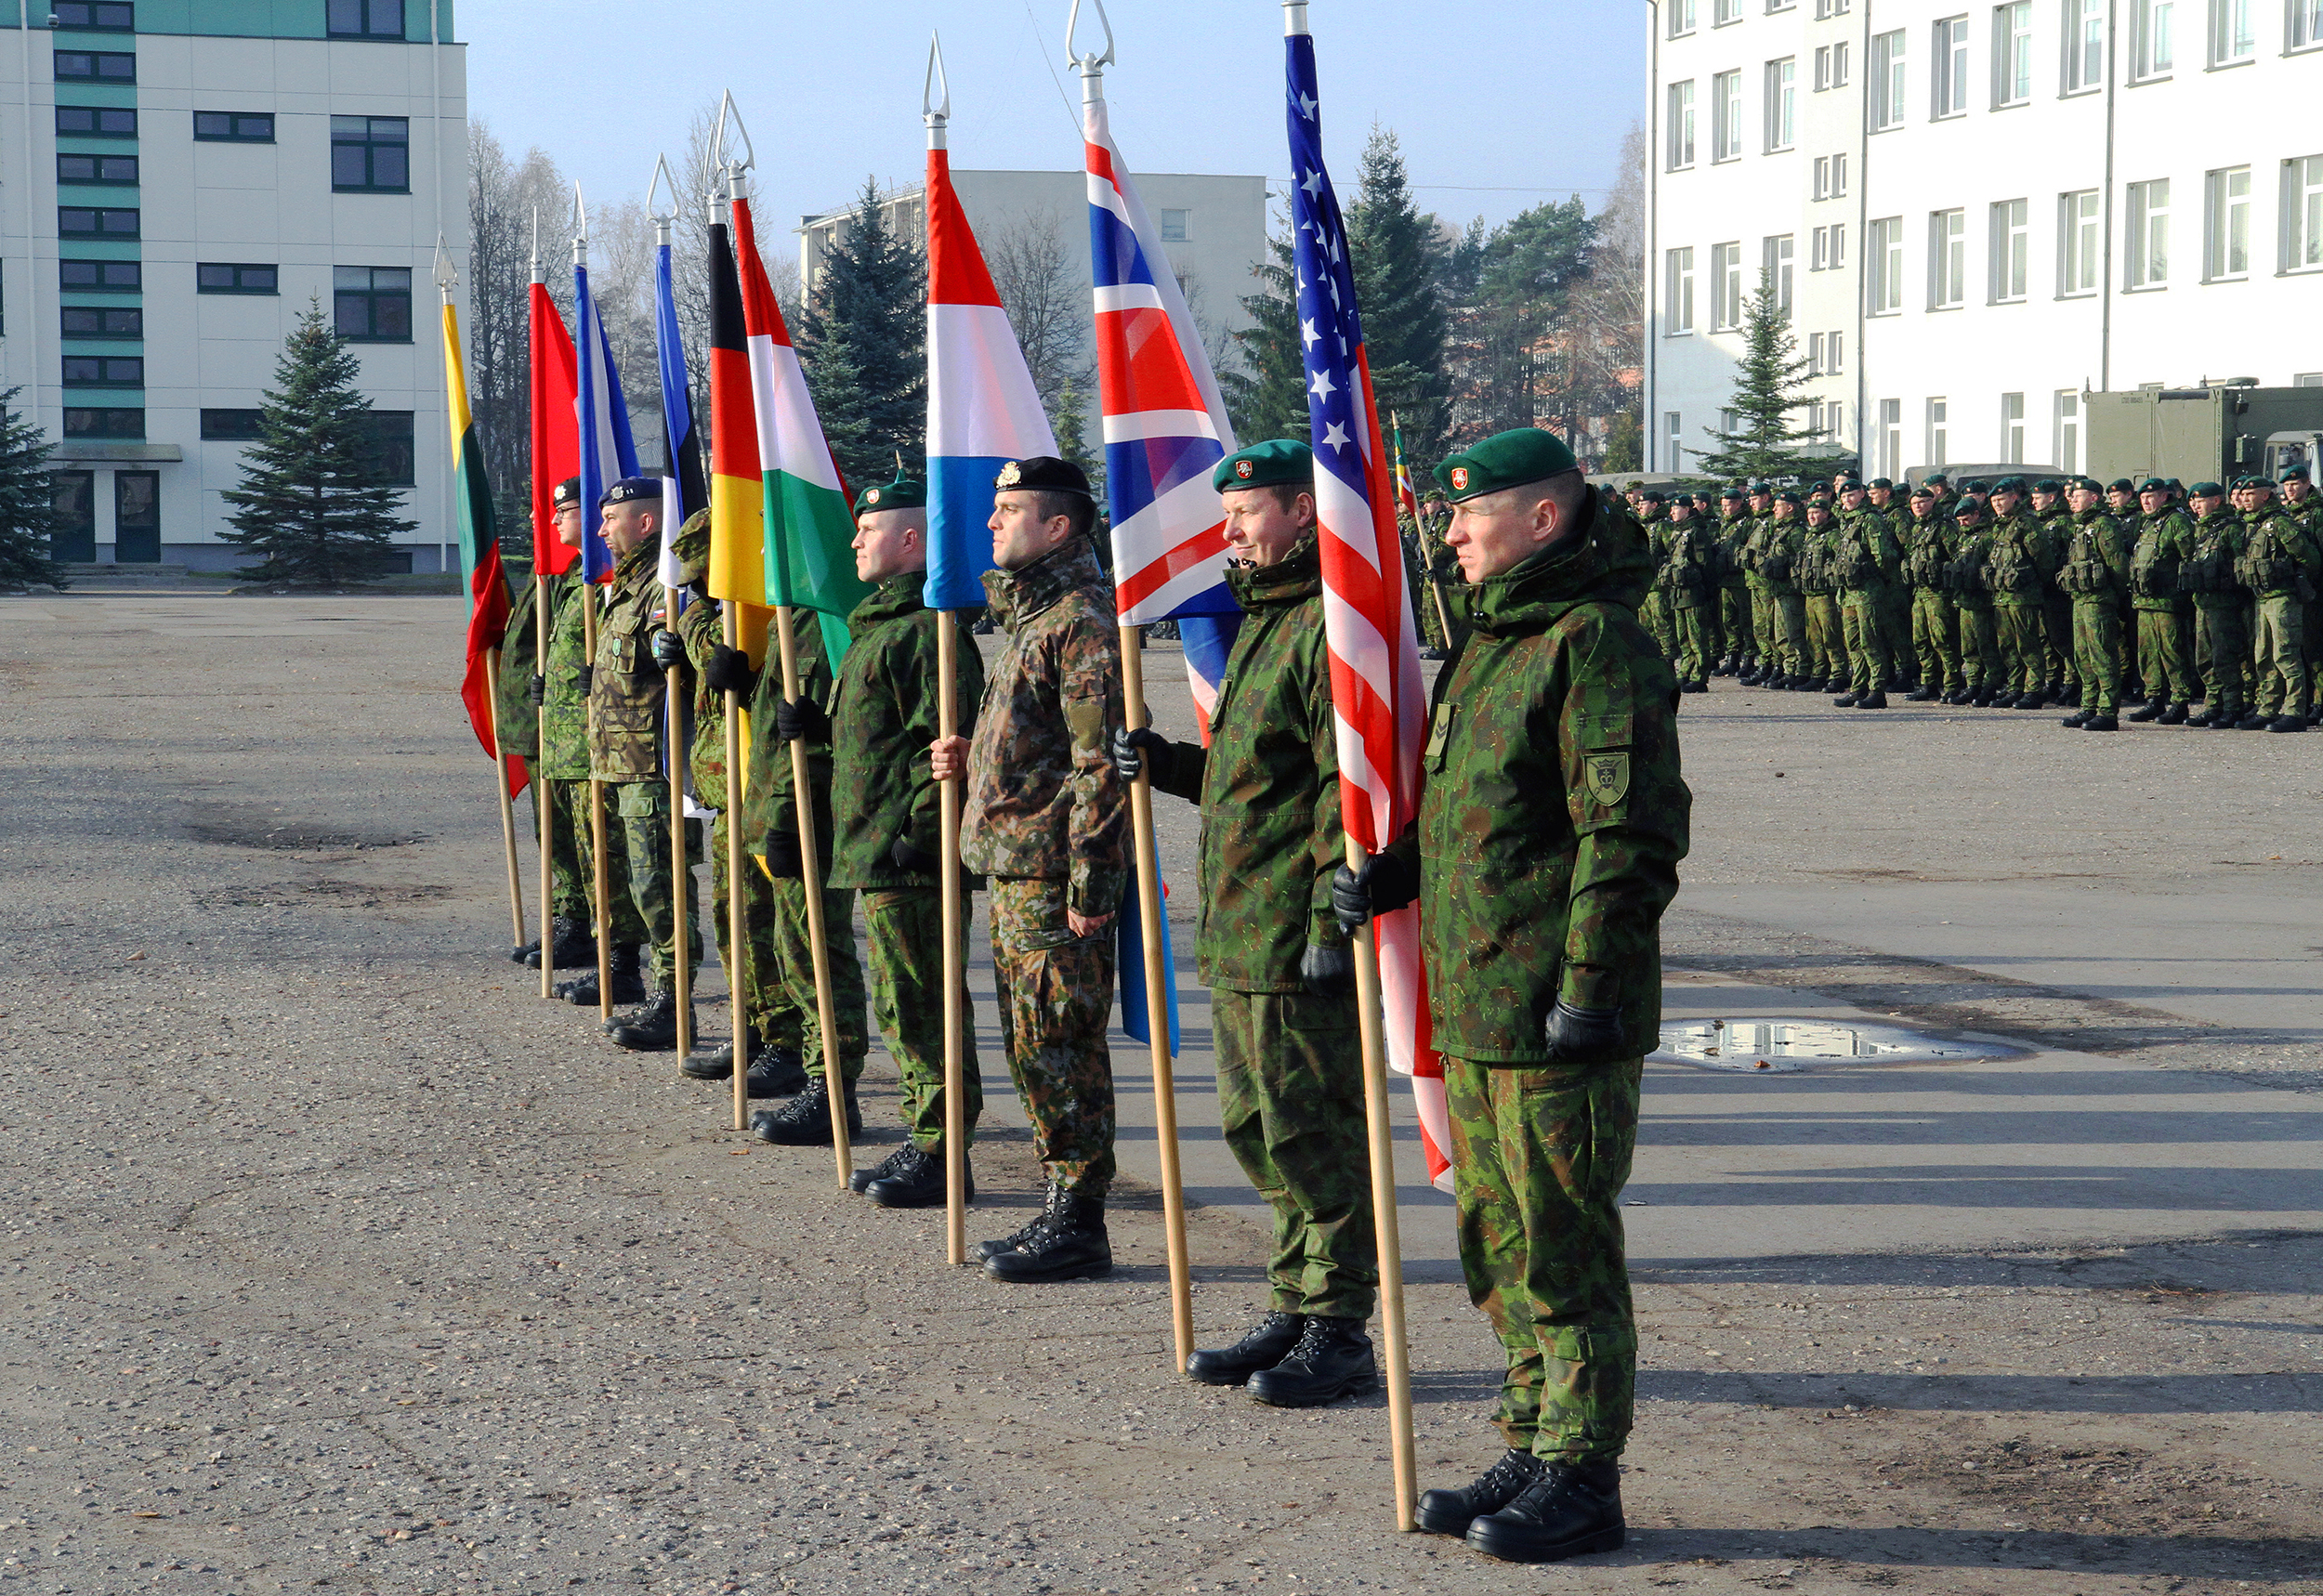 Servicemembers from Canada, the Czech Republic, Estonia, Hungary, Germany, Lithuania, Luxemburg, the United Kingdom and the United States display their country's flags at the commencement ceremony for Iron Sword 2014, an exercise incorporating all nine NATO countries, to enhance combined tactical competency and strategy. These activities are part of the U.S. Army Europe-led Operation Atlantic Resolve land force assurance training taking place across Estonia, Latvia, Lithuania and Poland to enhance multinational interoperability, strengthen relationships among allied militaries, contribute to regional stability and demonstrate U.S. commitment to NATO. (Photo by Spc. Seth LaCount)